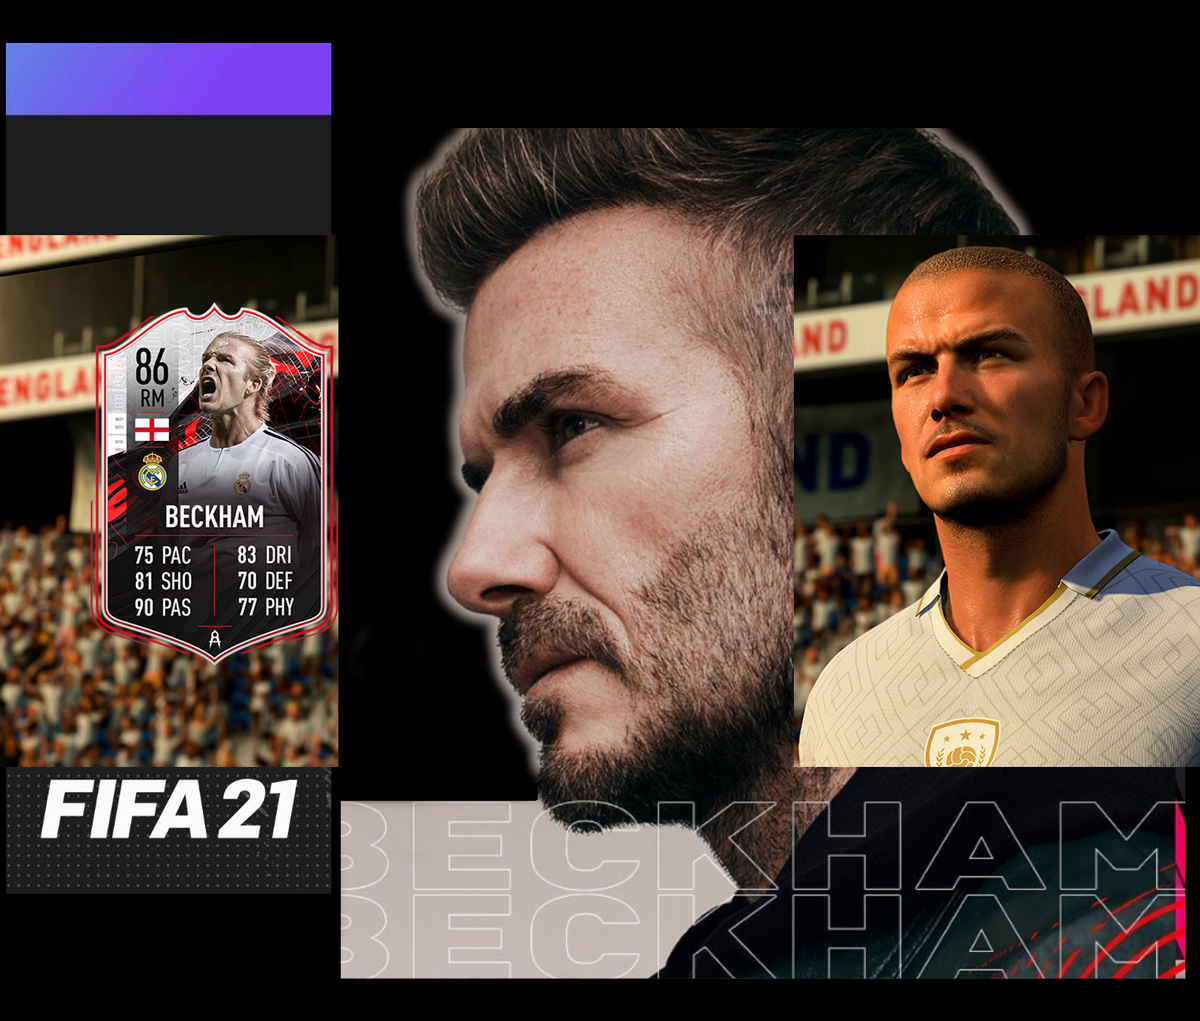 David Beckham, Legend of the Game, Returns as EA FIFA 21 Cover Star